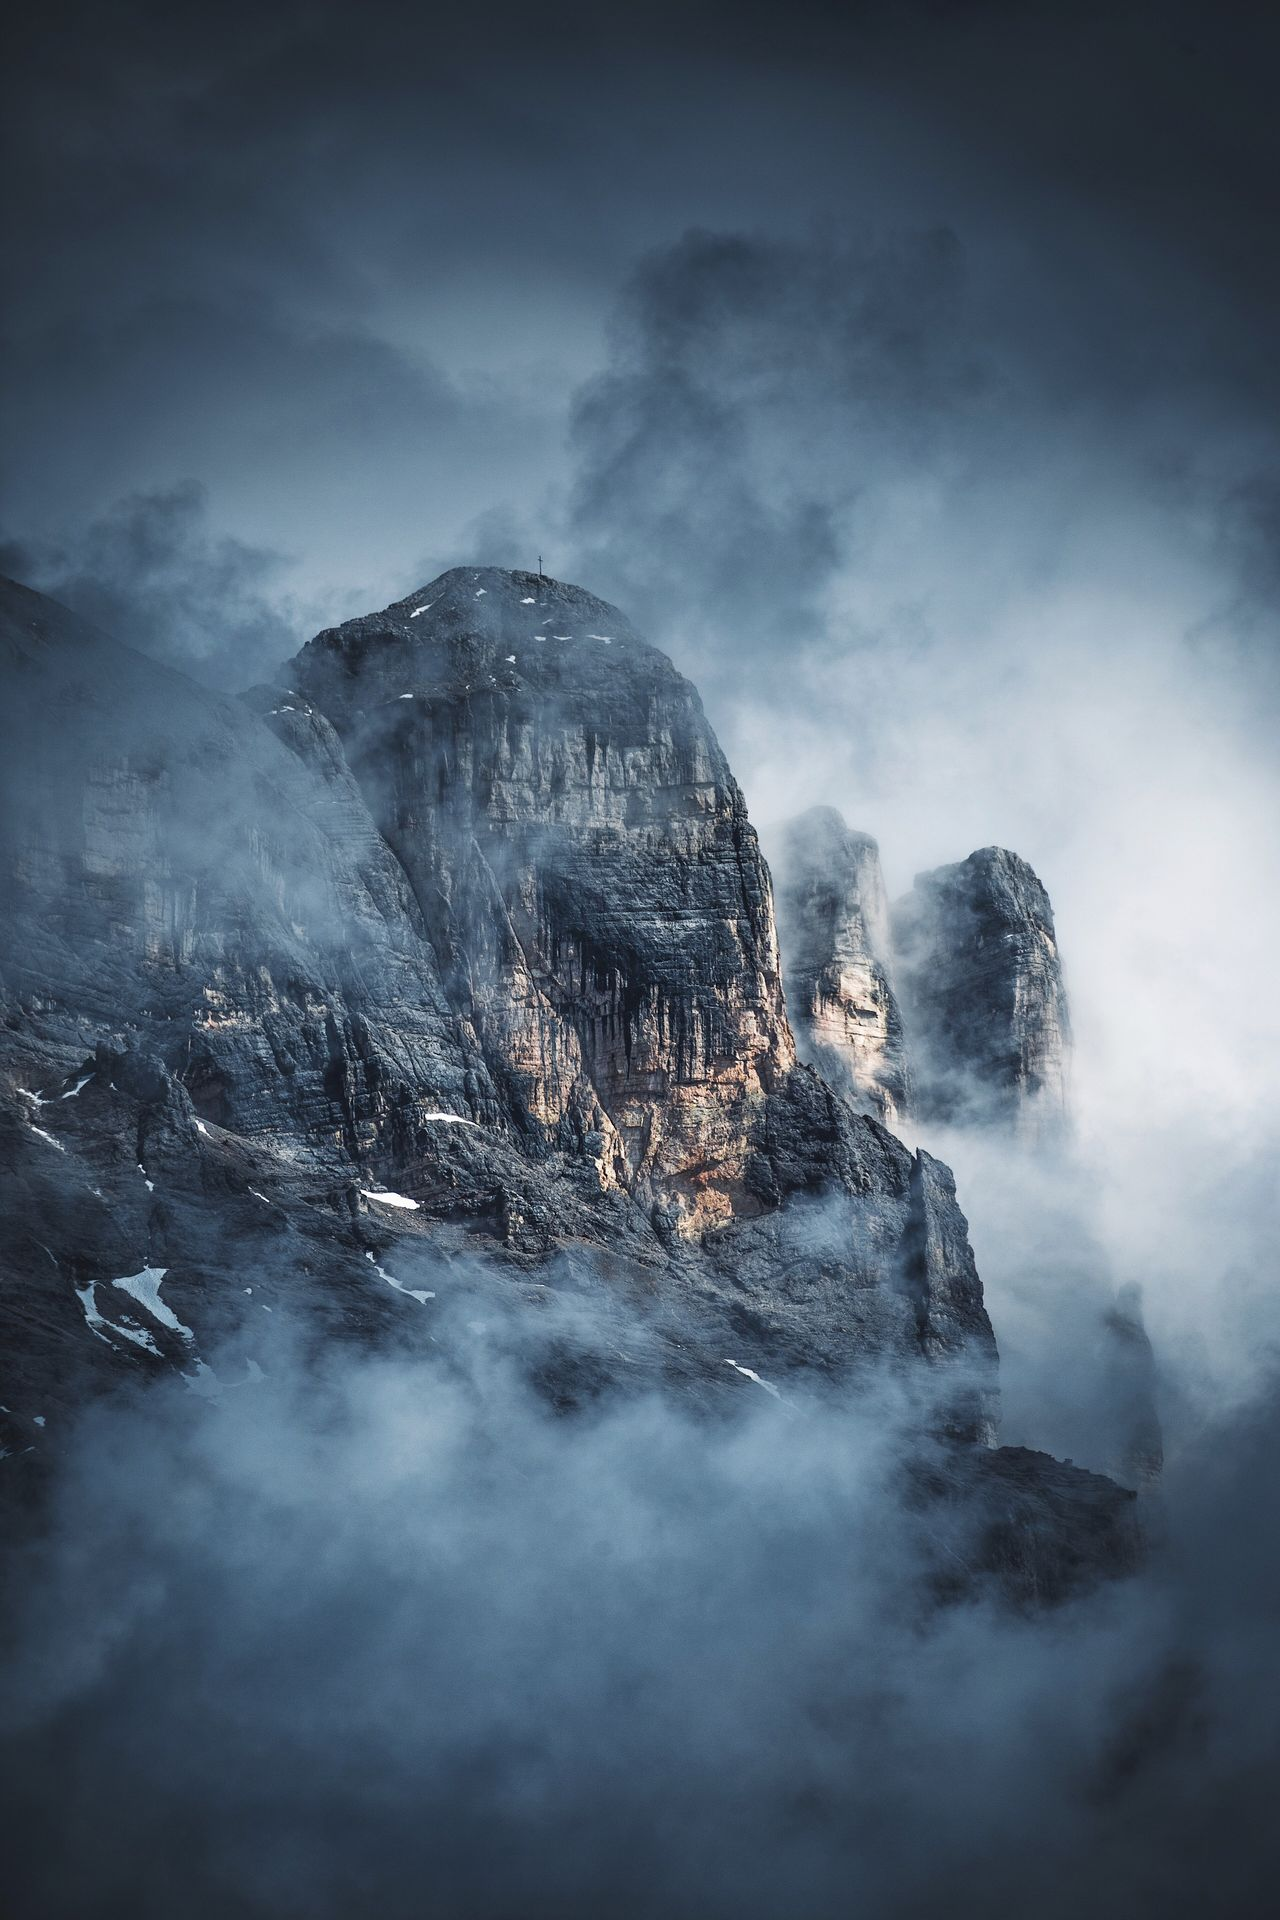 Put your fog pants on. Nature Fog Beauty In Nature Rock - Object No People Outdoors Scenics Cold Temperature Cloud - Sky Winter Sky Day Mountain Landscape Dolomites, Italy